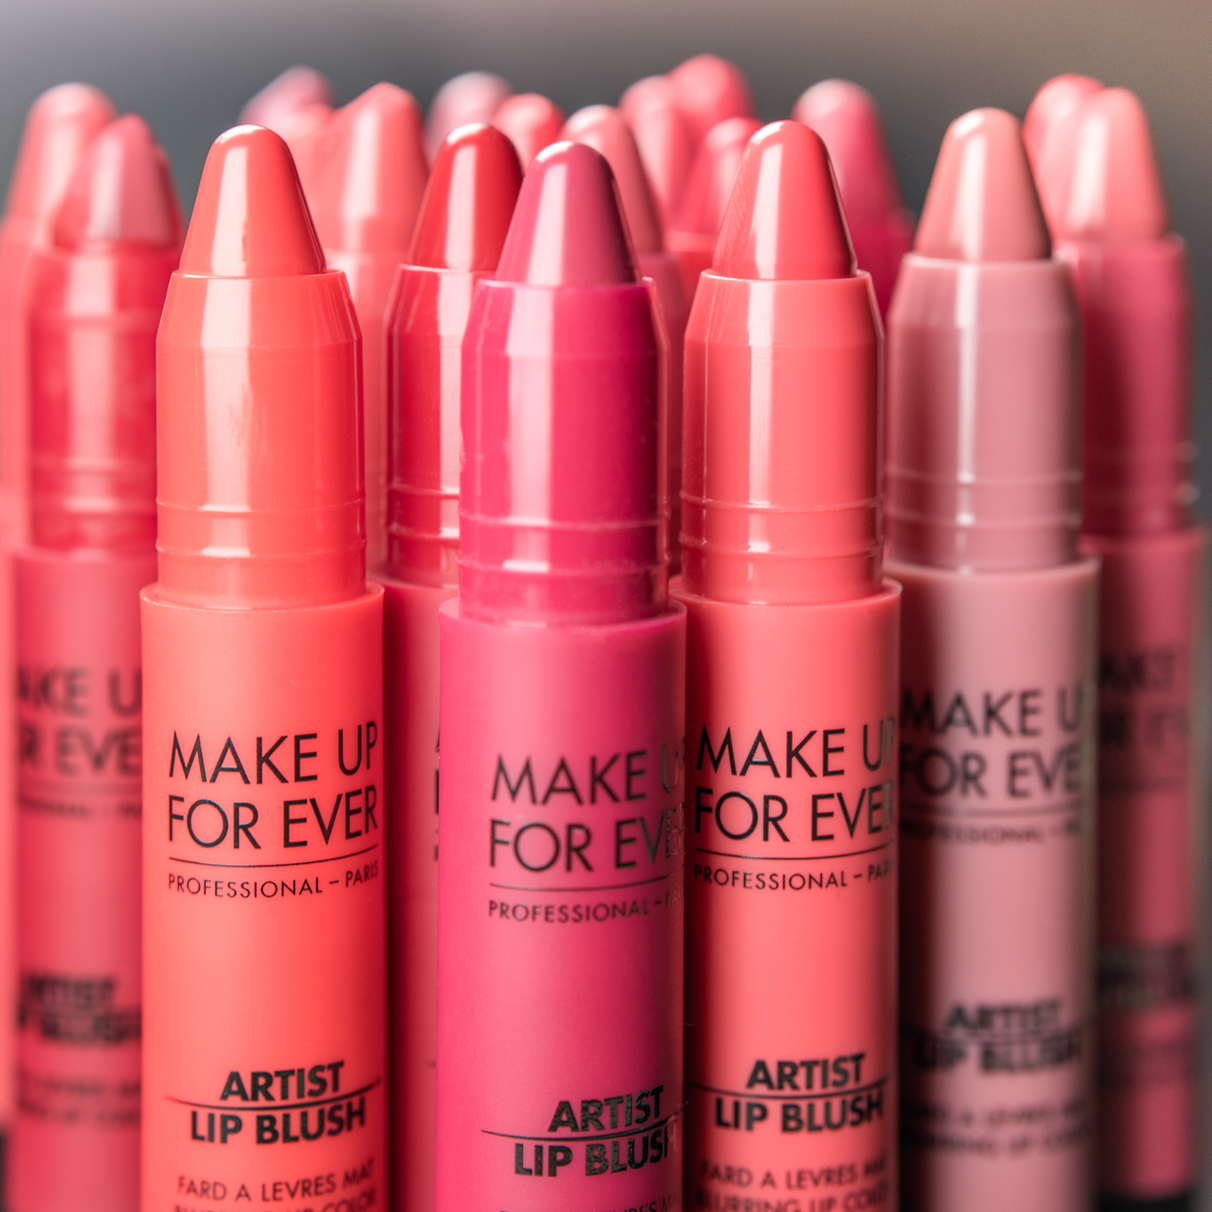 artist-lip-blush-make-up-for-ever-collection